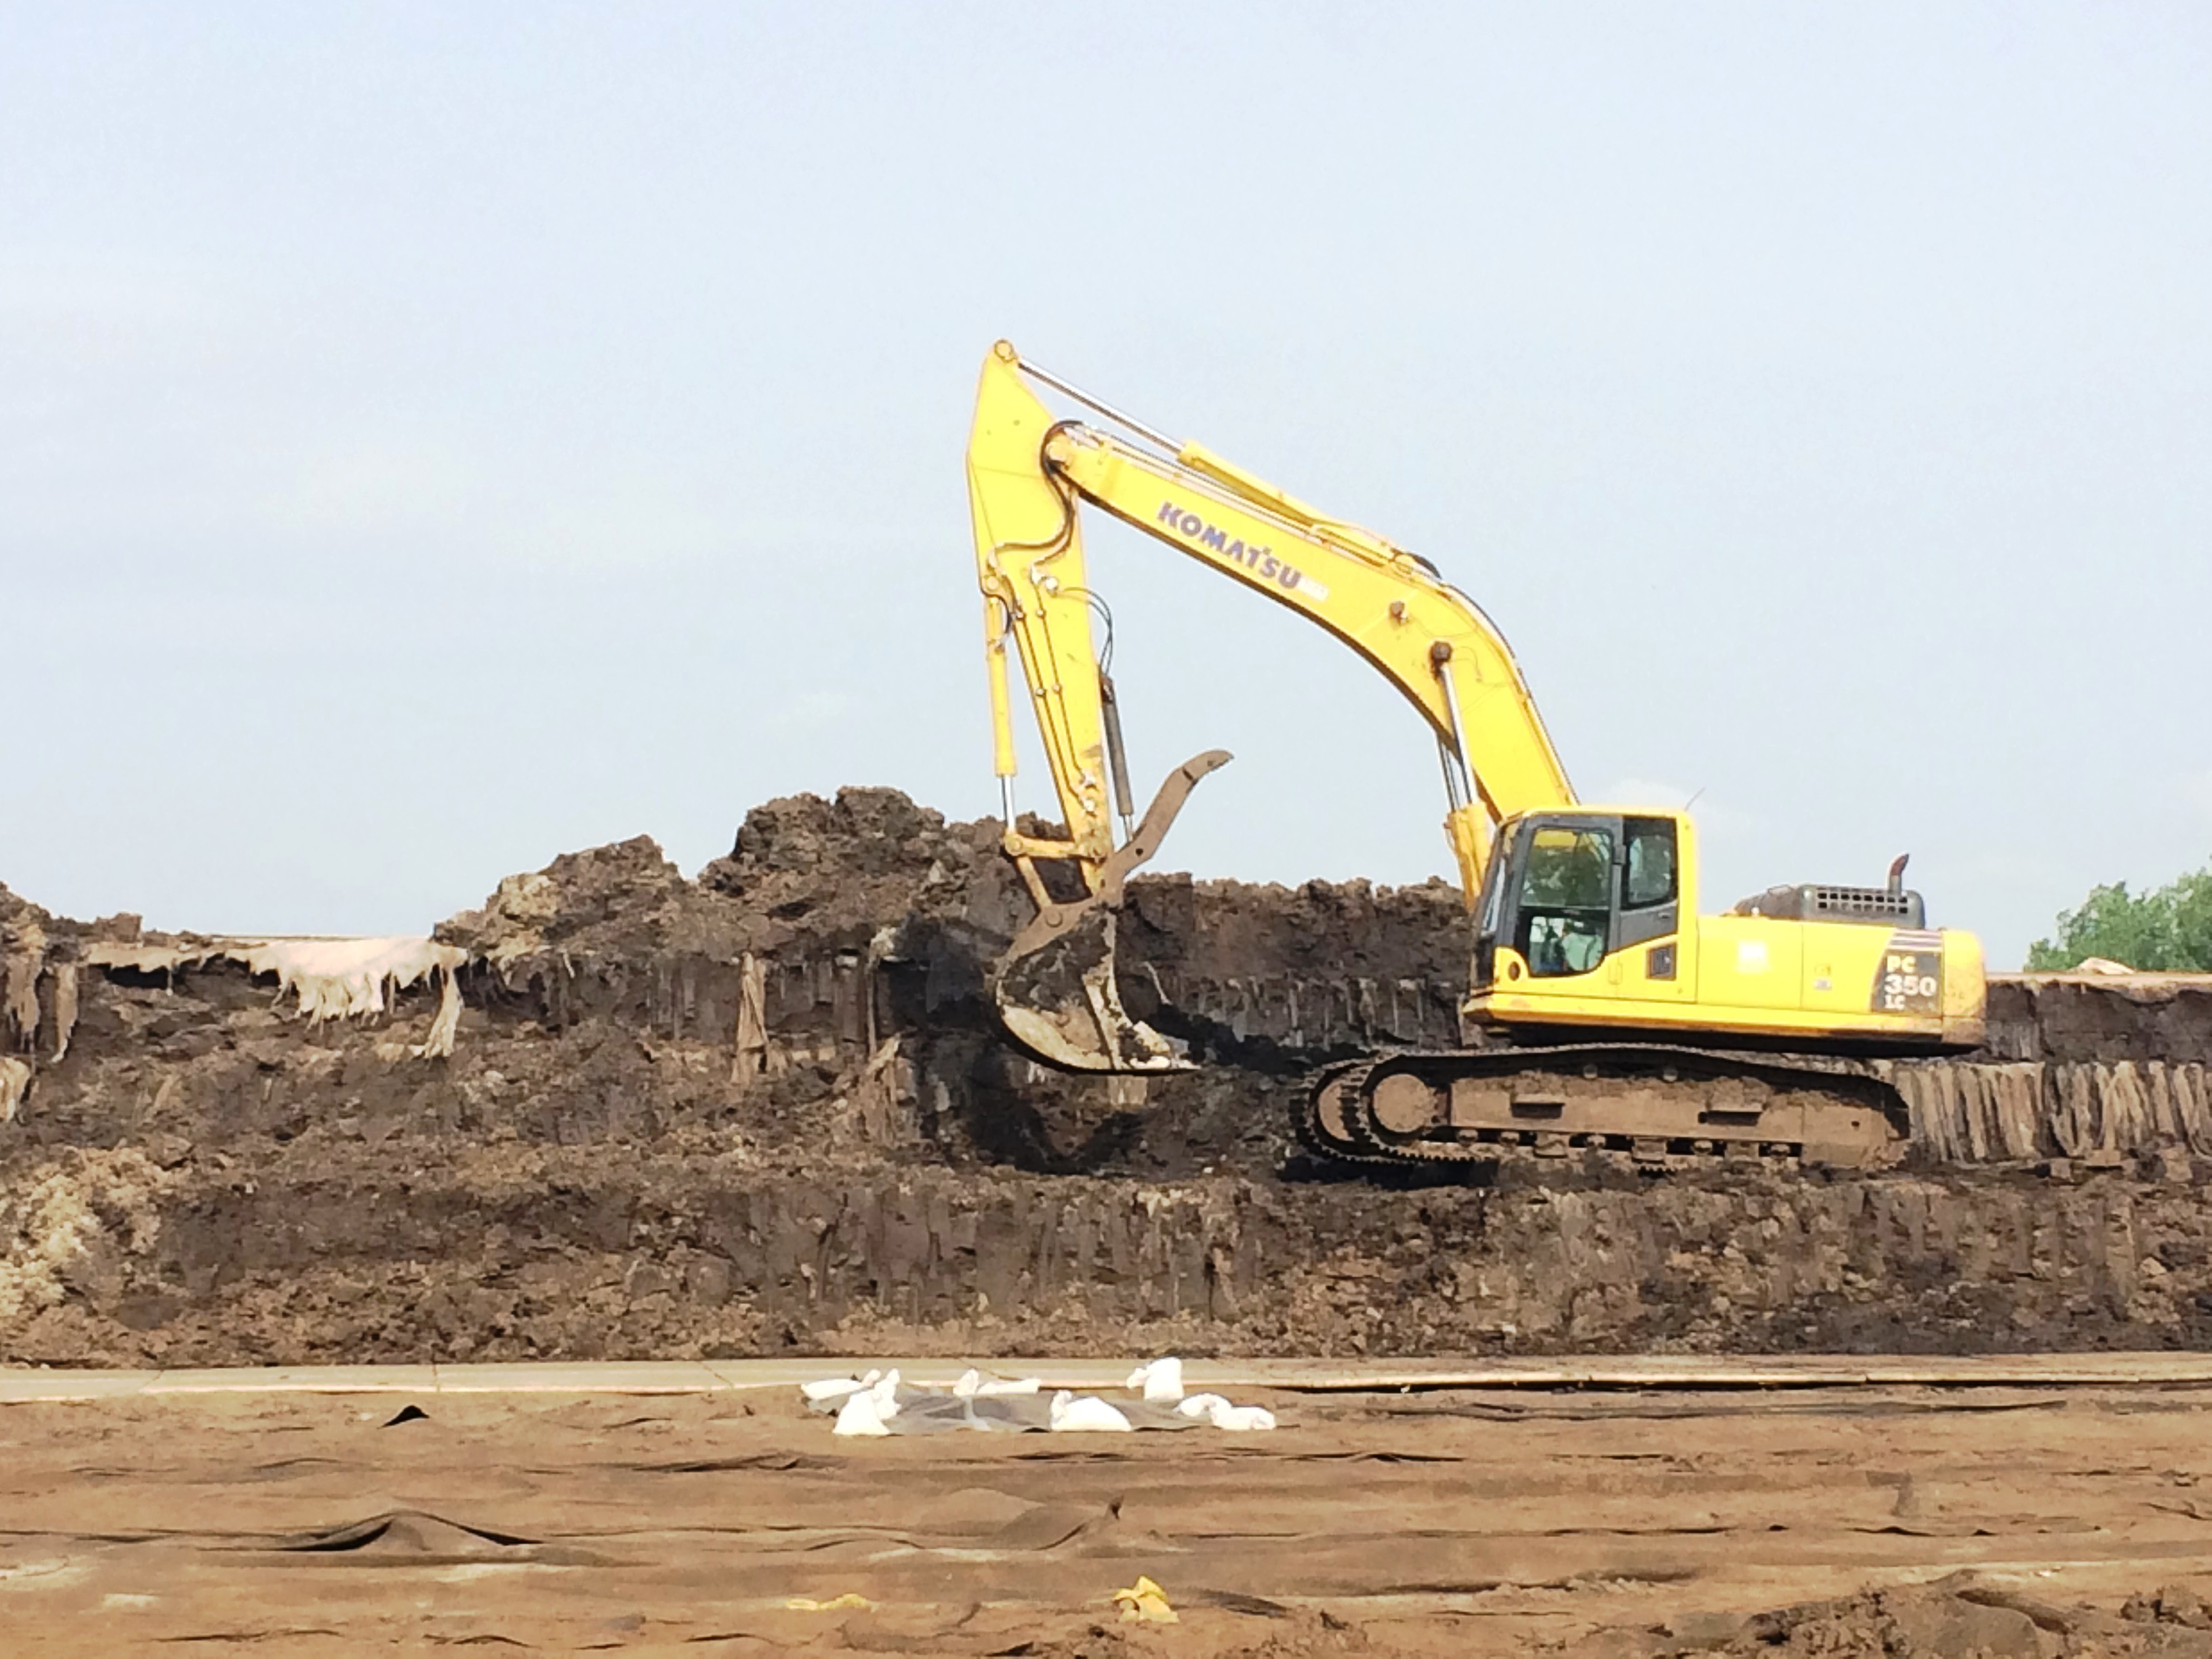 Excavator loads dewatered material into trucks